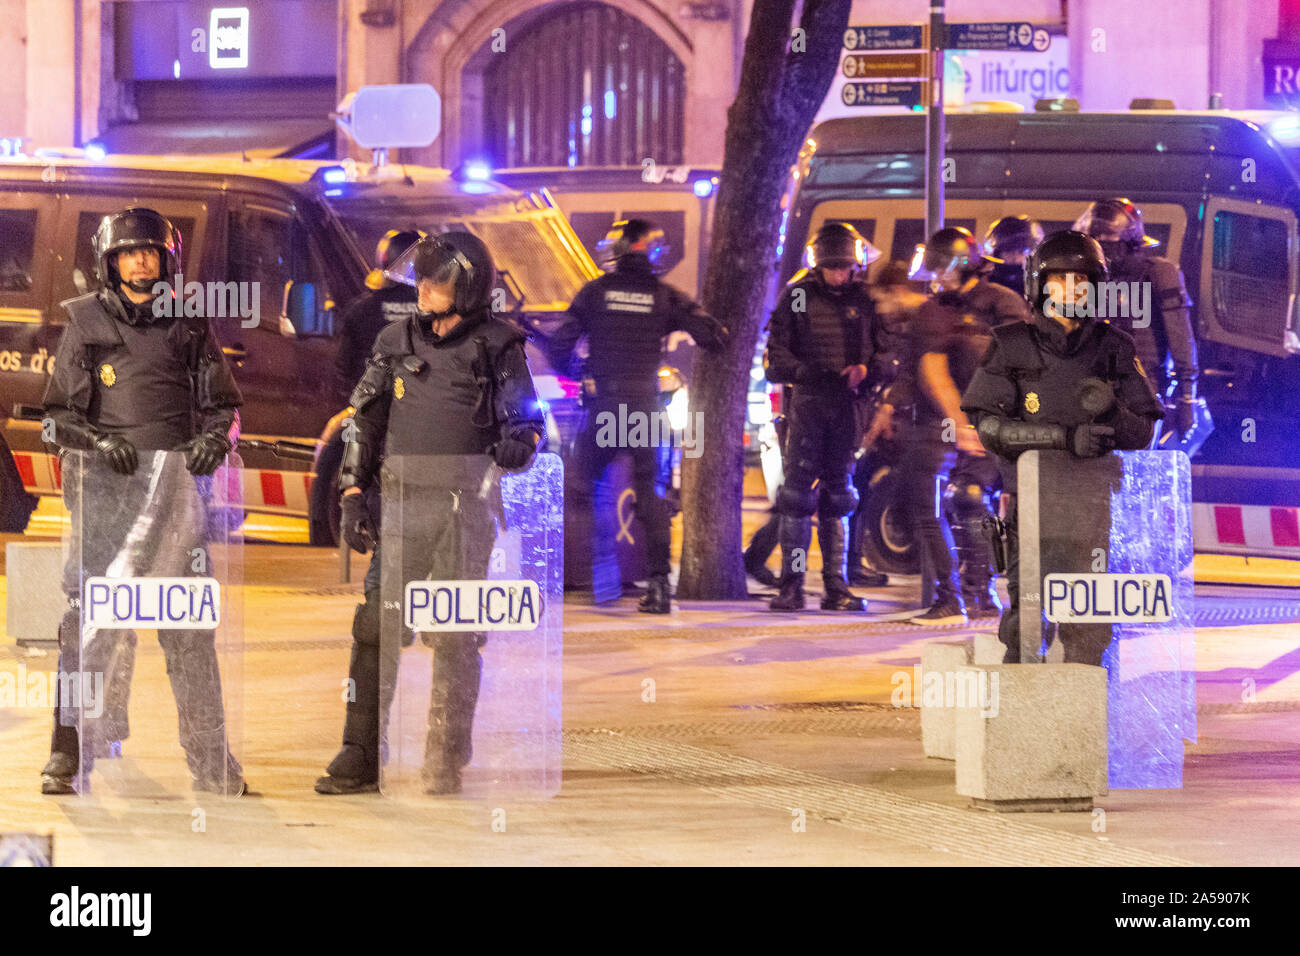 Barcelona, Spain - October 18, 2019: Spanish police on Via Laietana in Barcelona during the protests agains the jailing of the Catalan leaders Credit: Dino Geromella/Alamy Live News Stock Photo